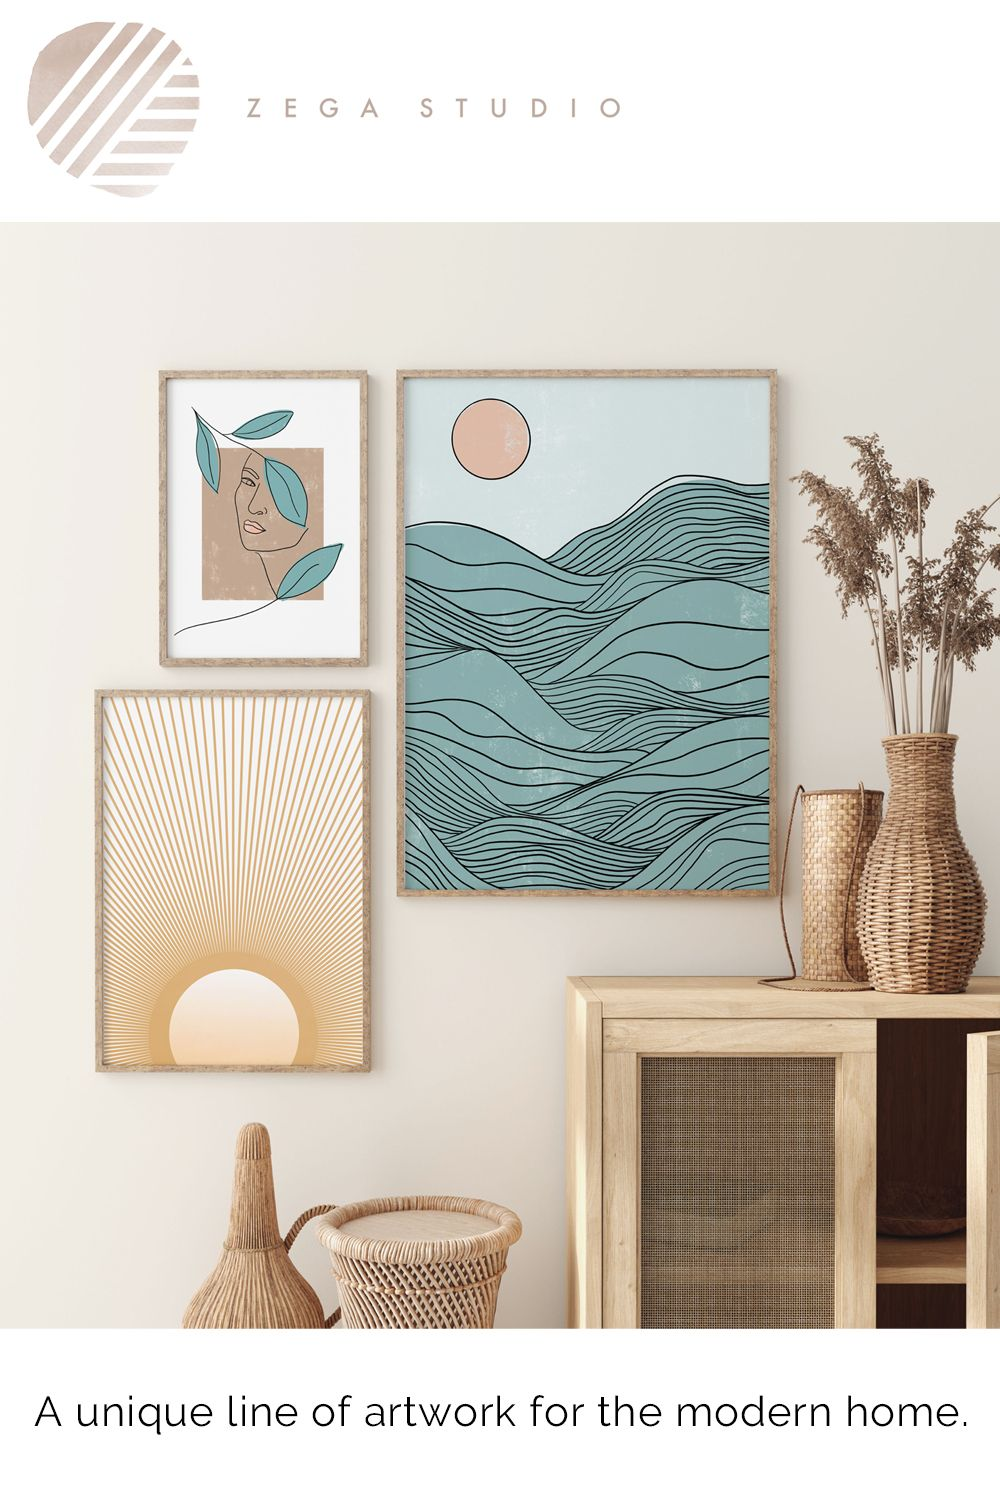 A unique line of artwork for the modern home.